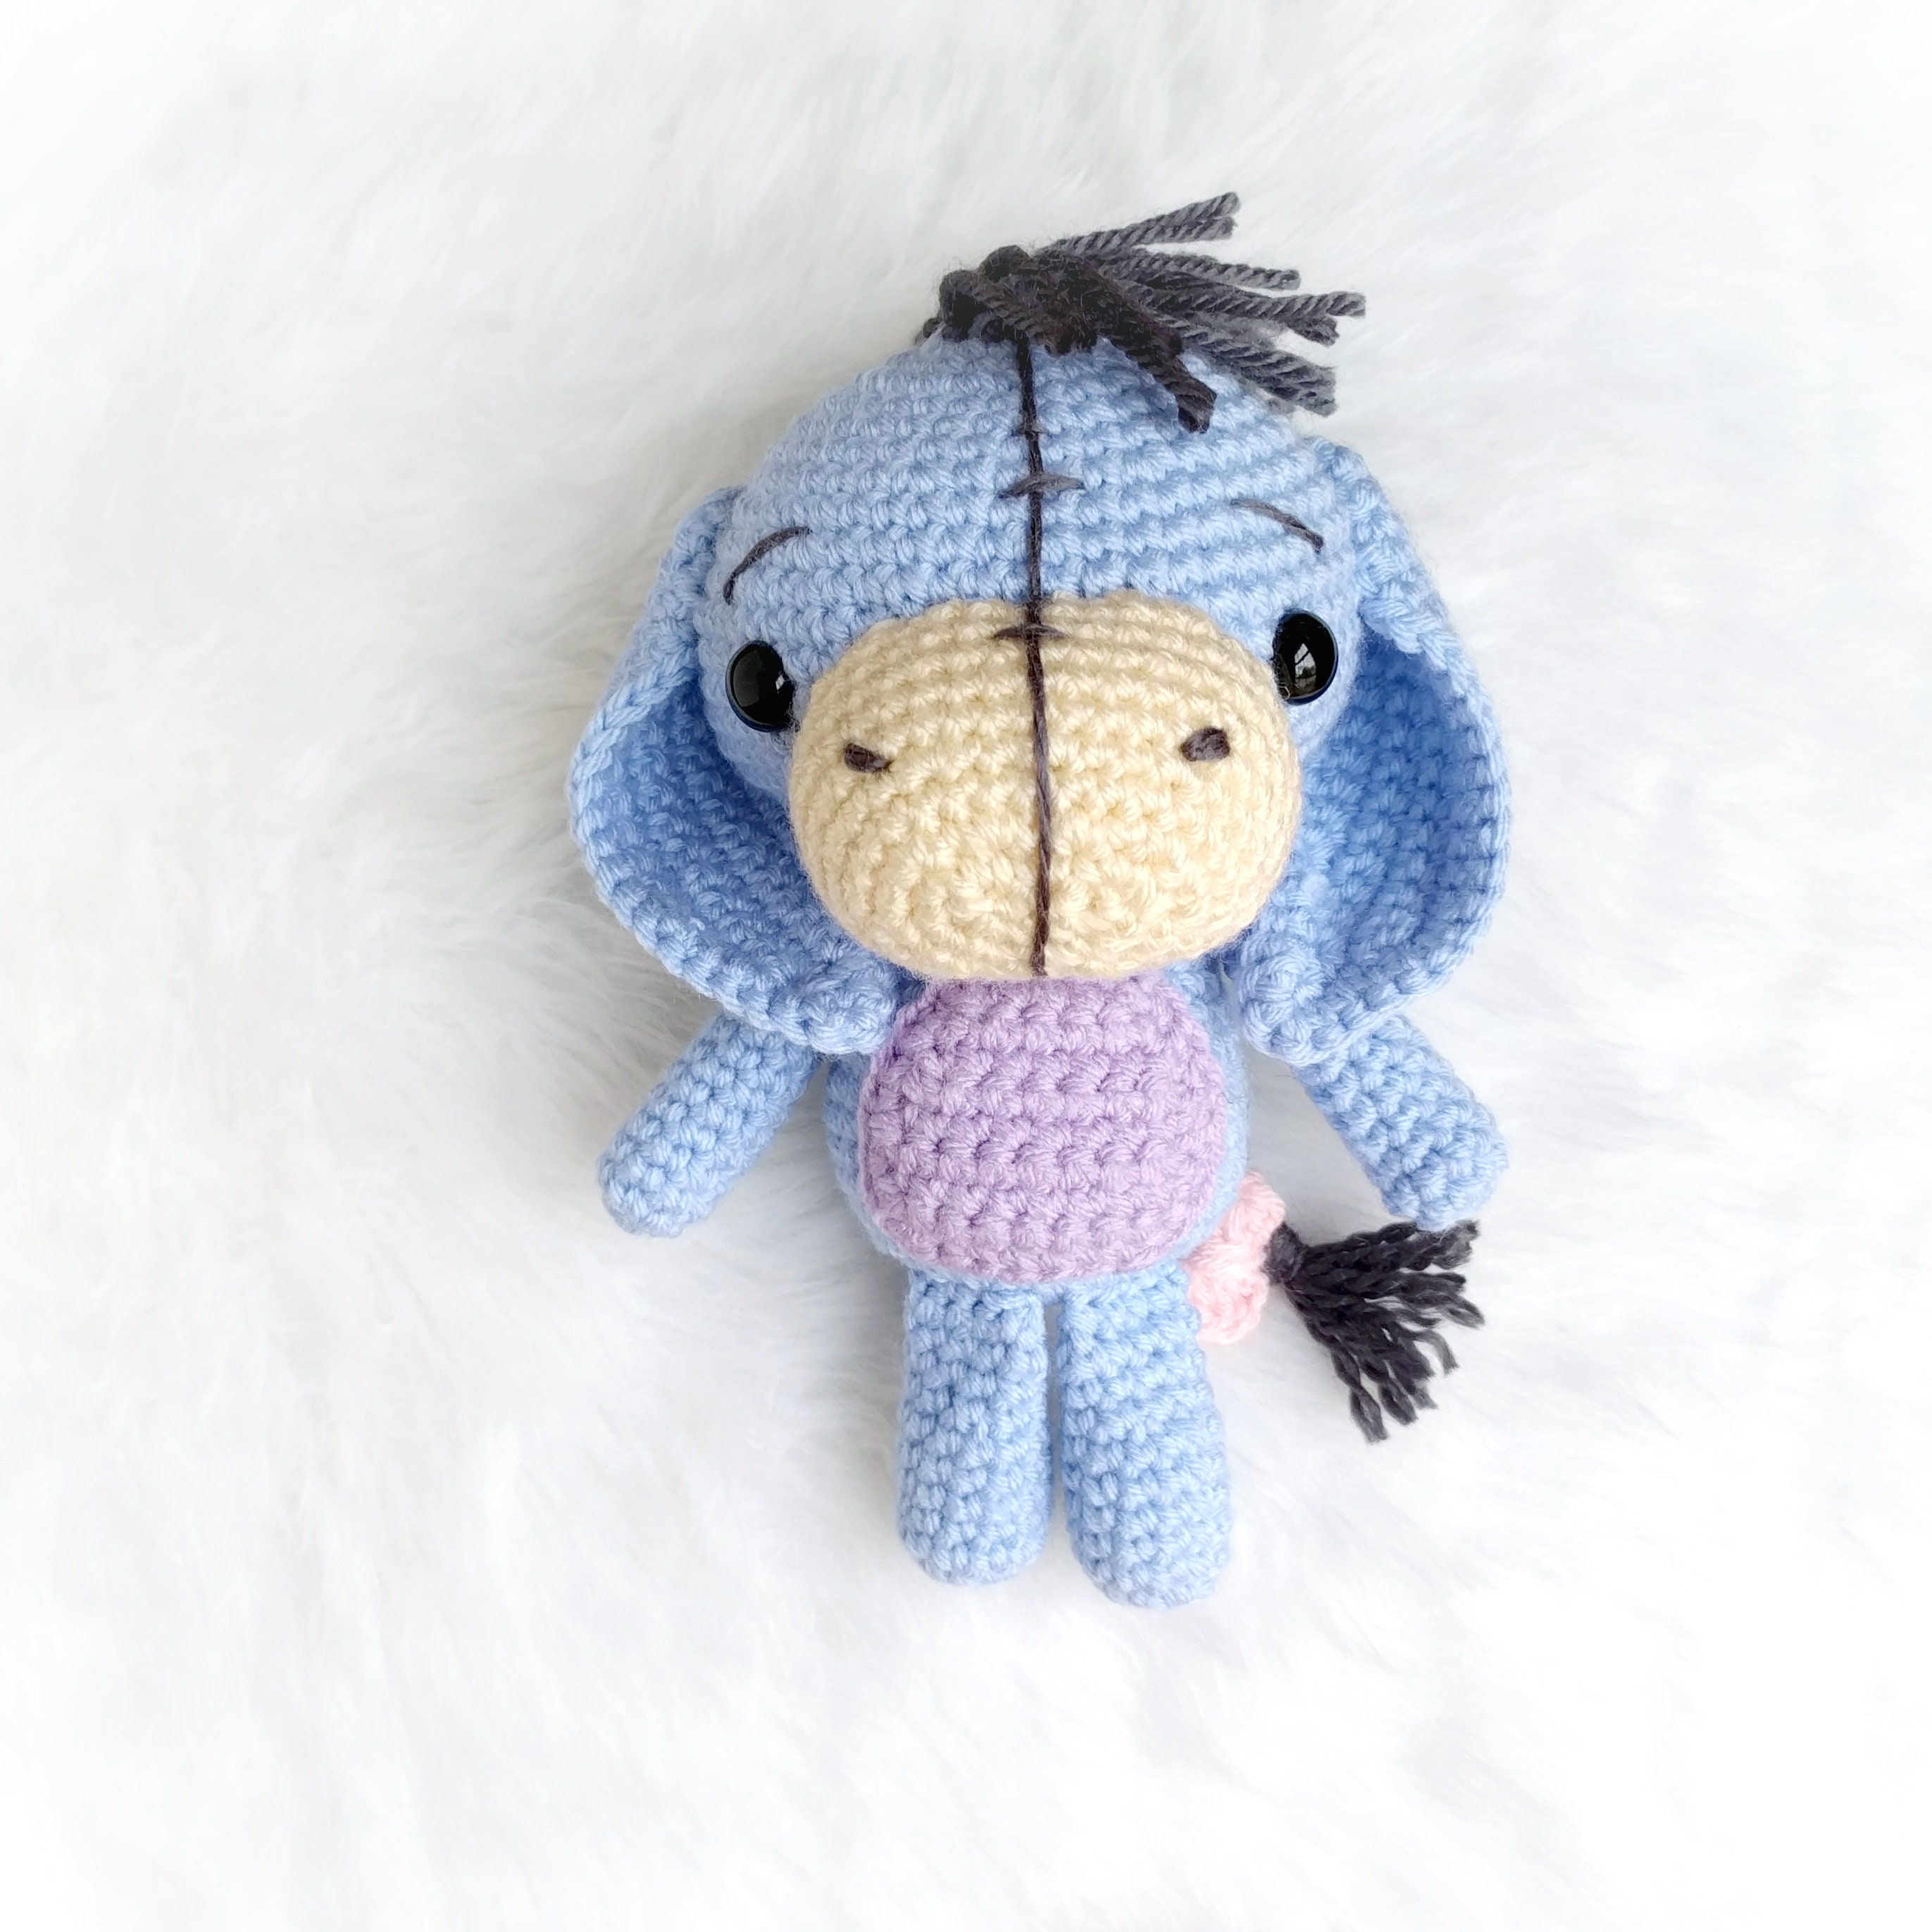 Baby donkey amigurumi pattern - printable PDF – Amigurumi Today Shop | 2743x2743